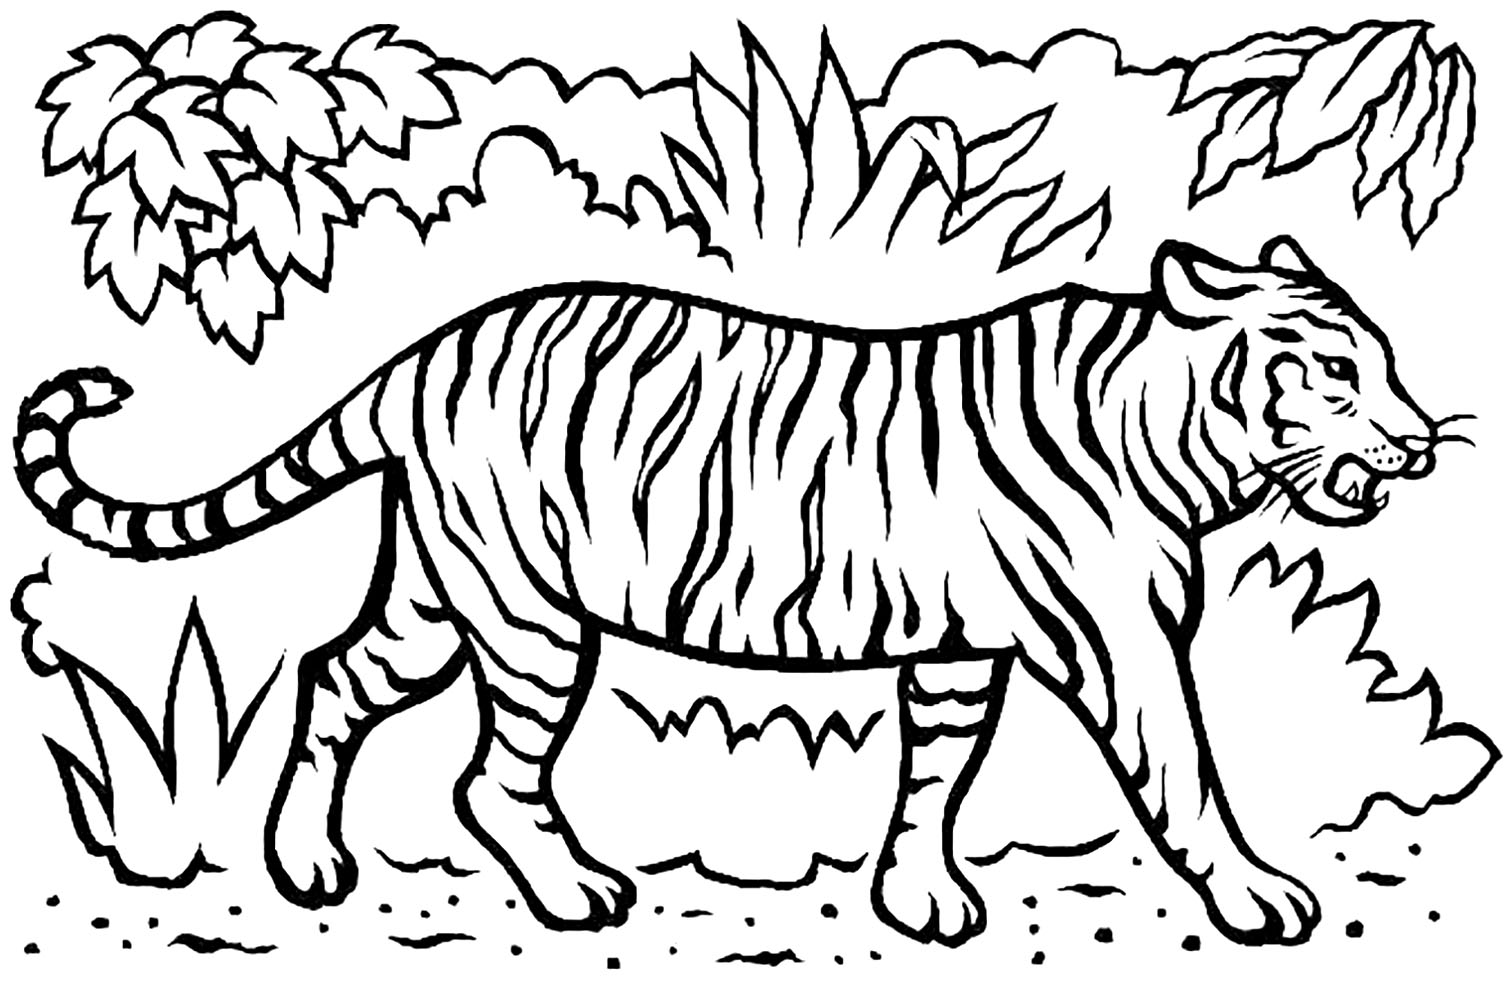 tiger coloring games tiger coloring by number games the sun games site coloring tiger games